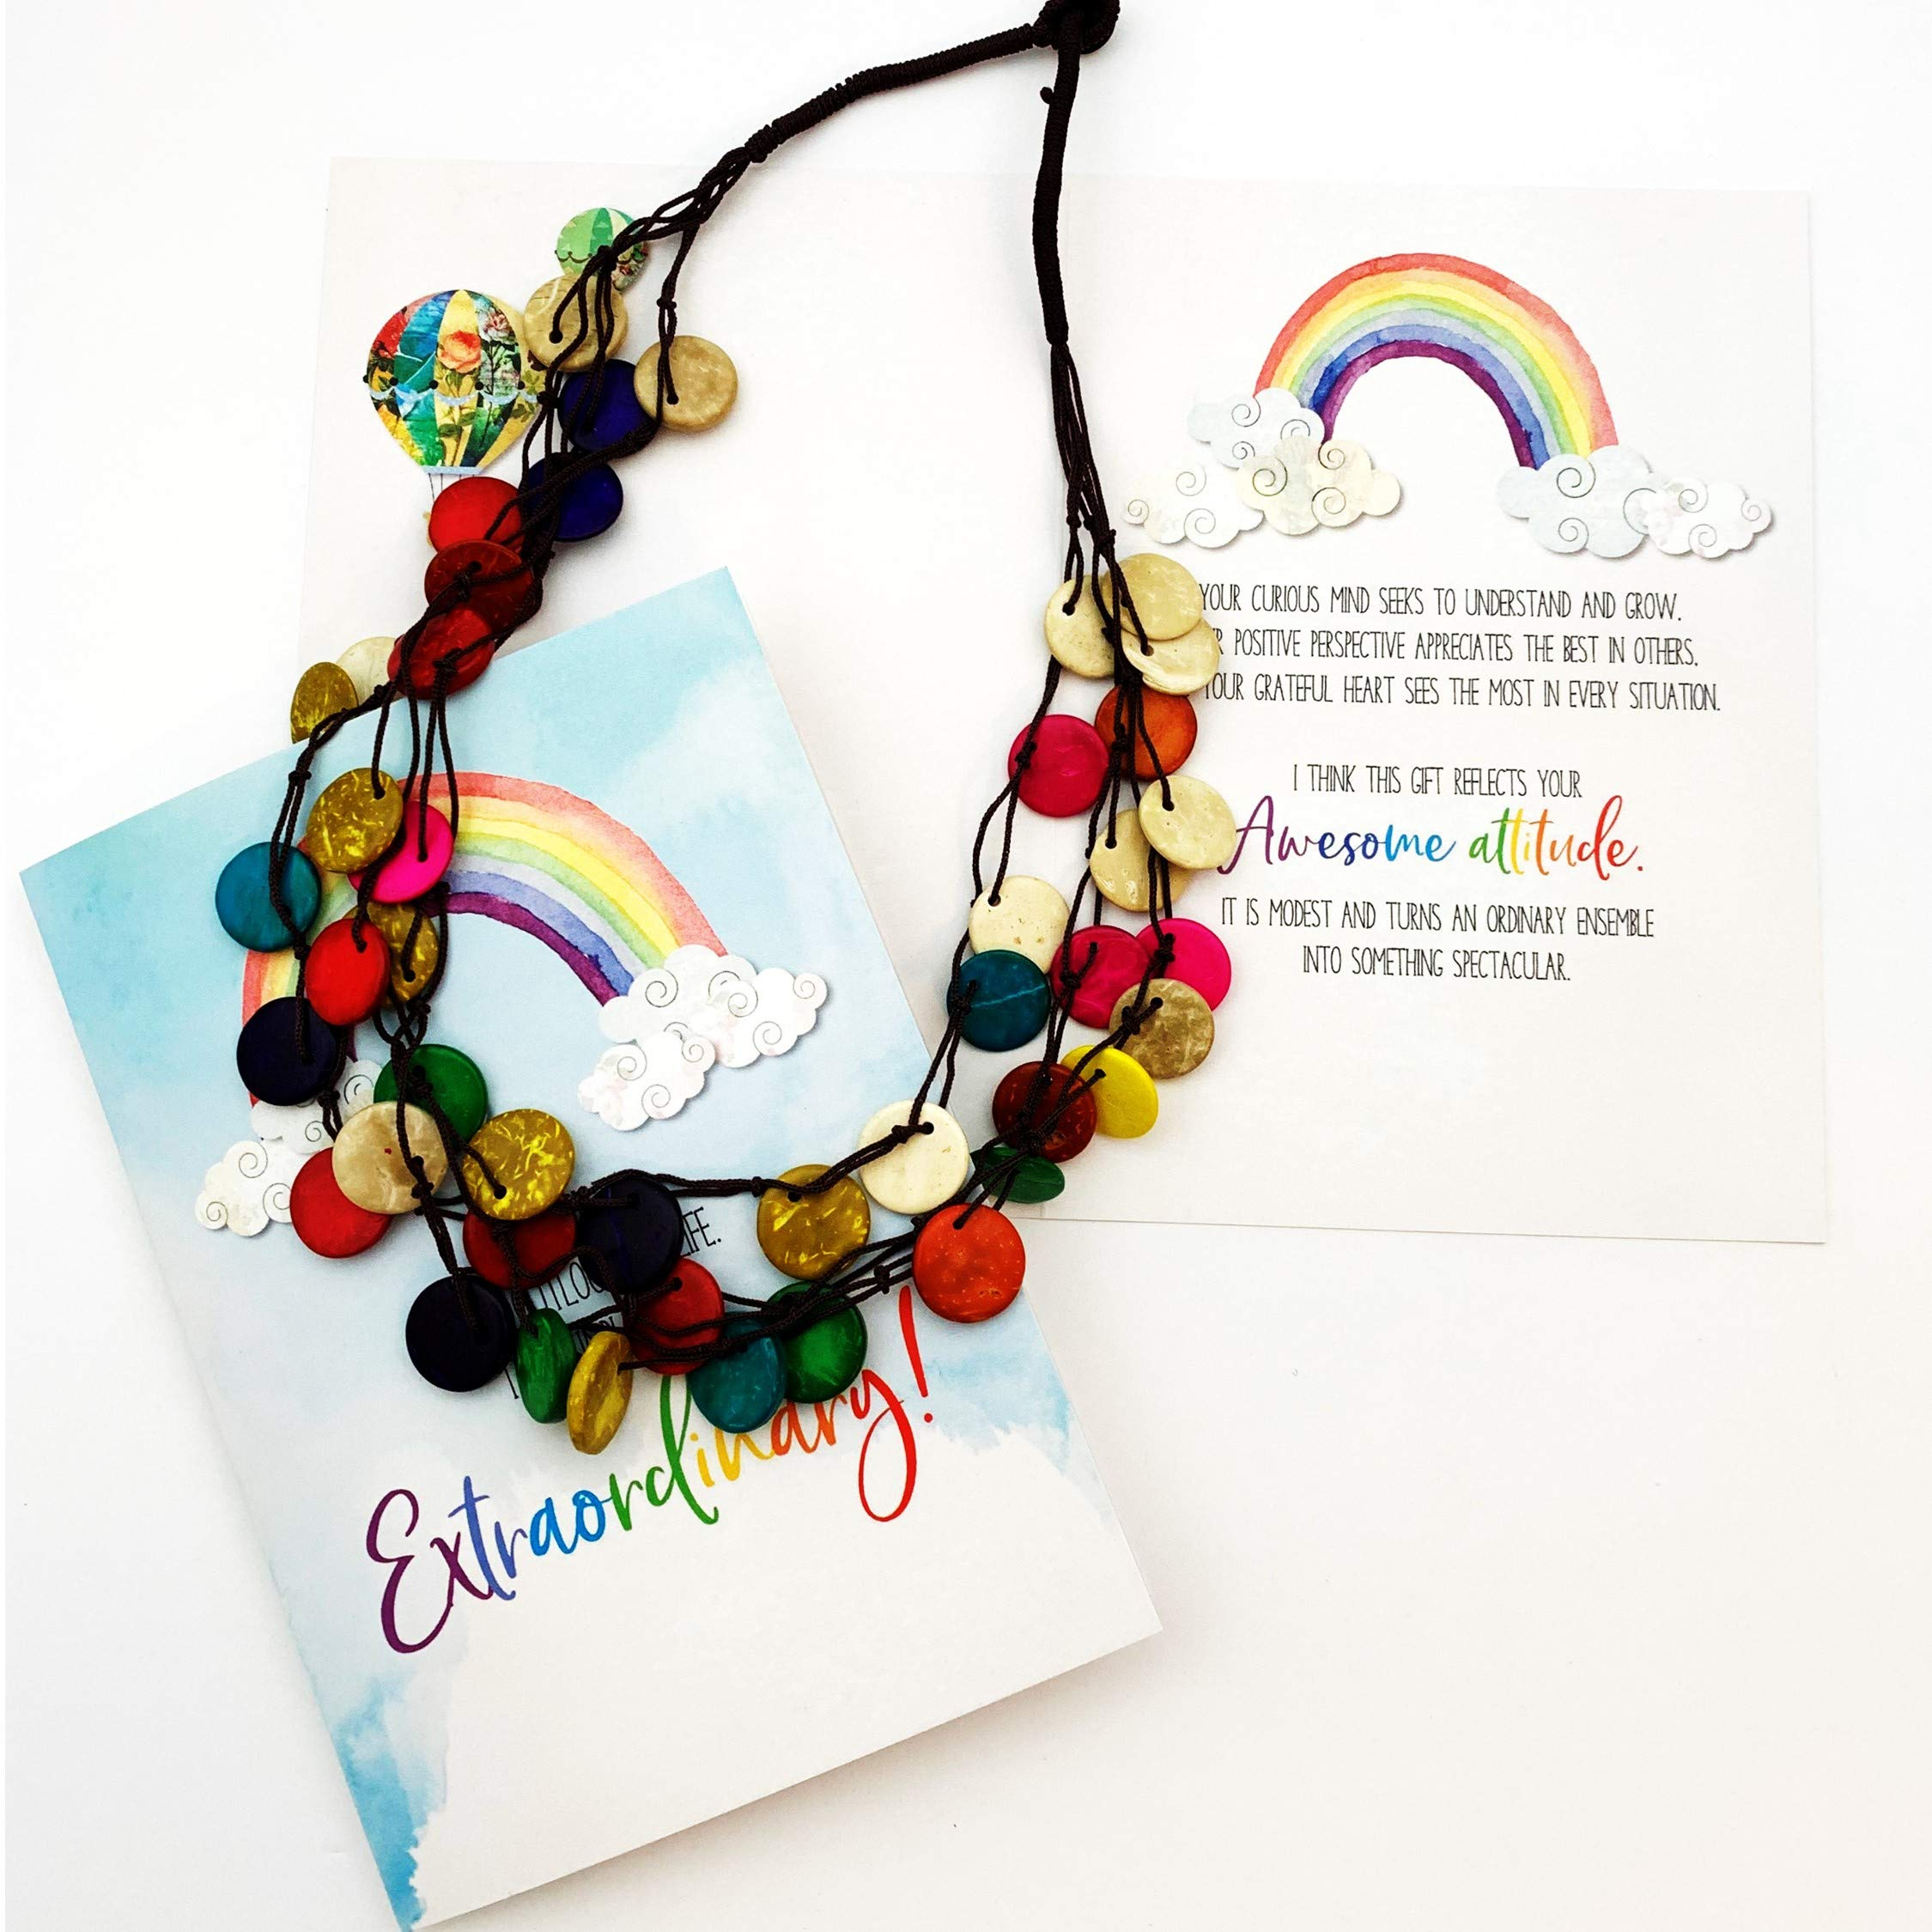 Smiling Wisdom - Rainbow You're Extraordinary Greeting Card Gift Set - Colorful 3 Strand Wood Bead Necklace - Teal Red Orange White Blue Yellow - Coconut Shell Wood Beads - Women Friend - Multicolored